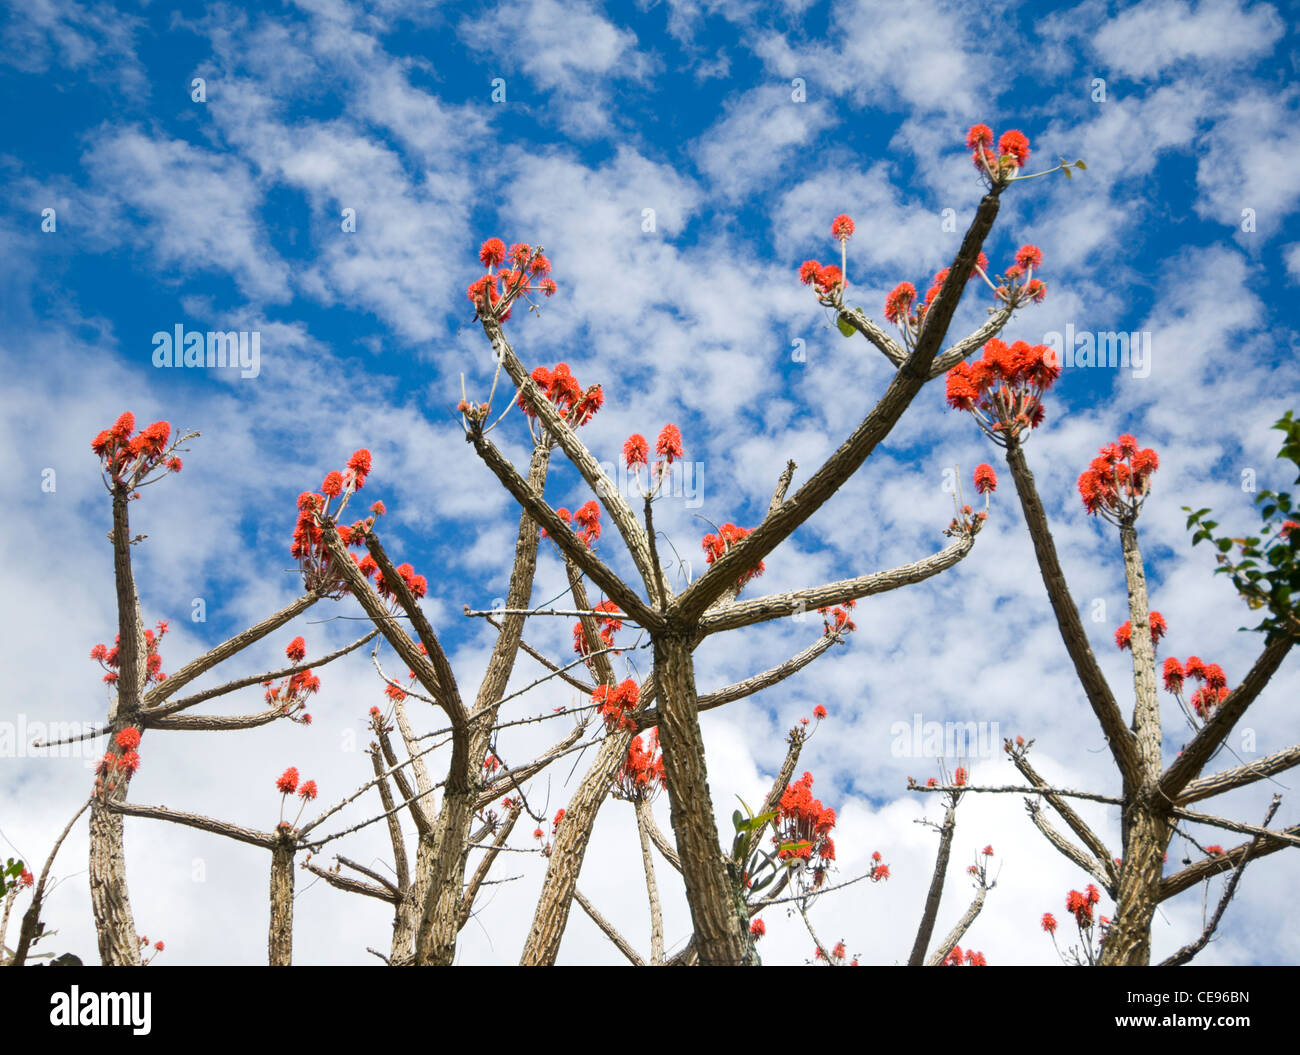 Leafless Tree with Red Flowers Costa Rica - Stock Image